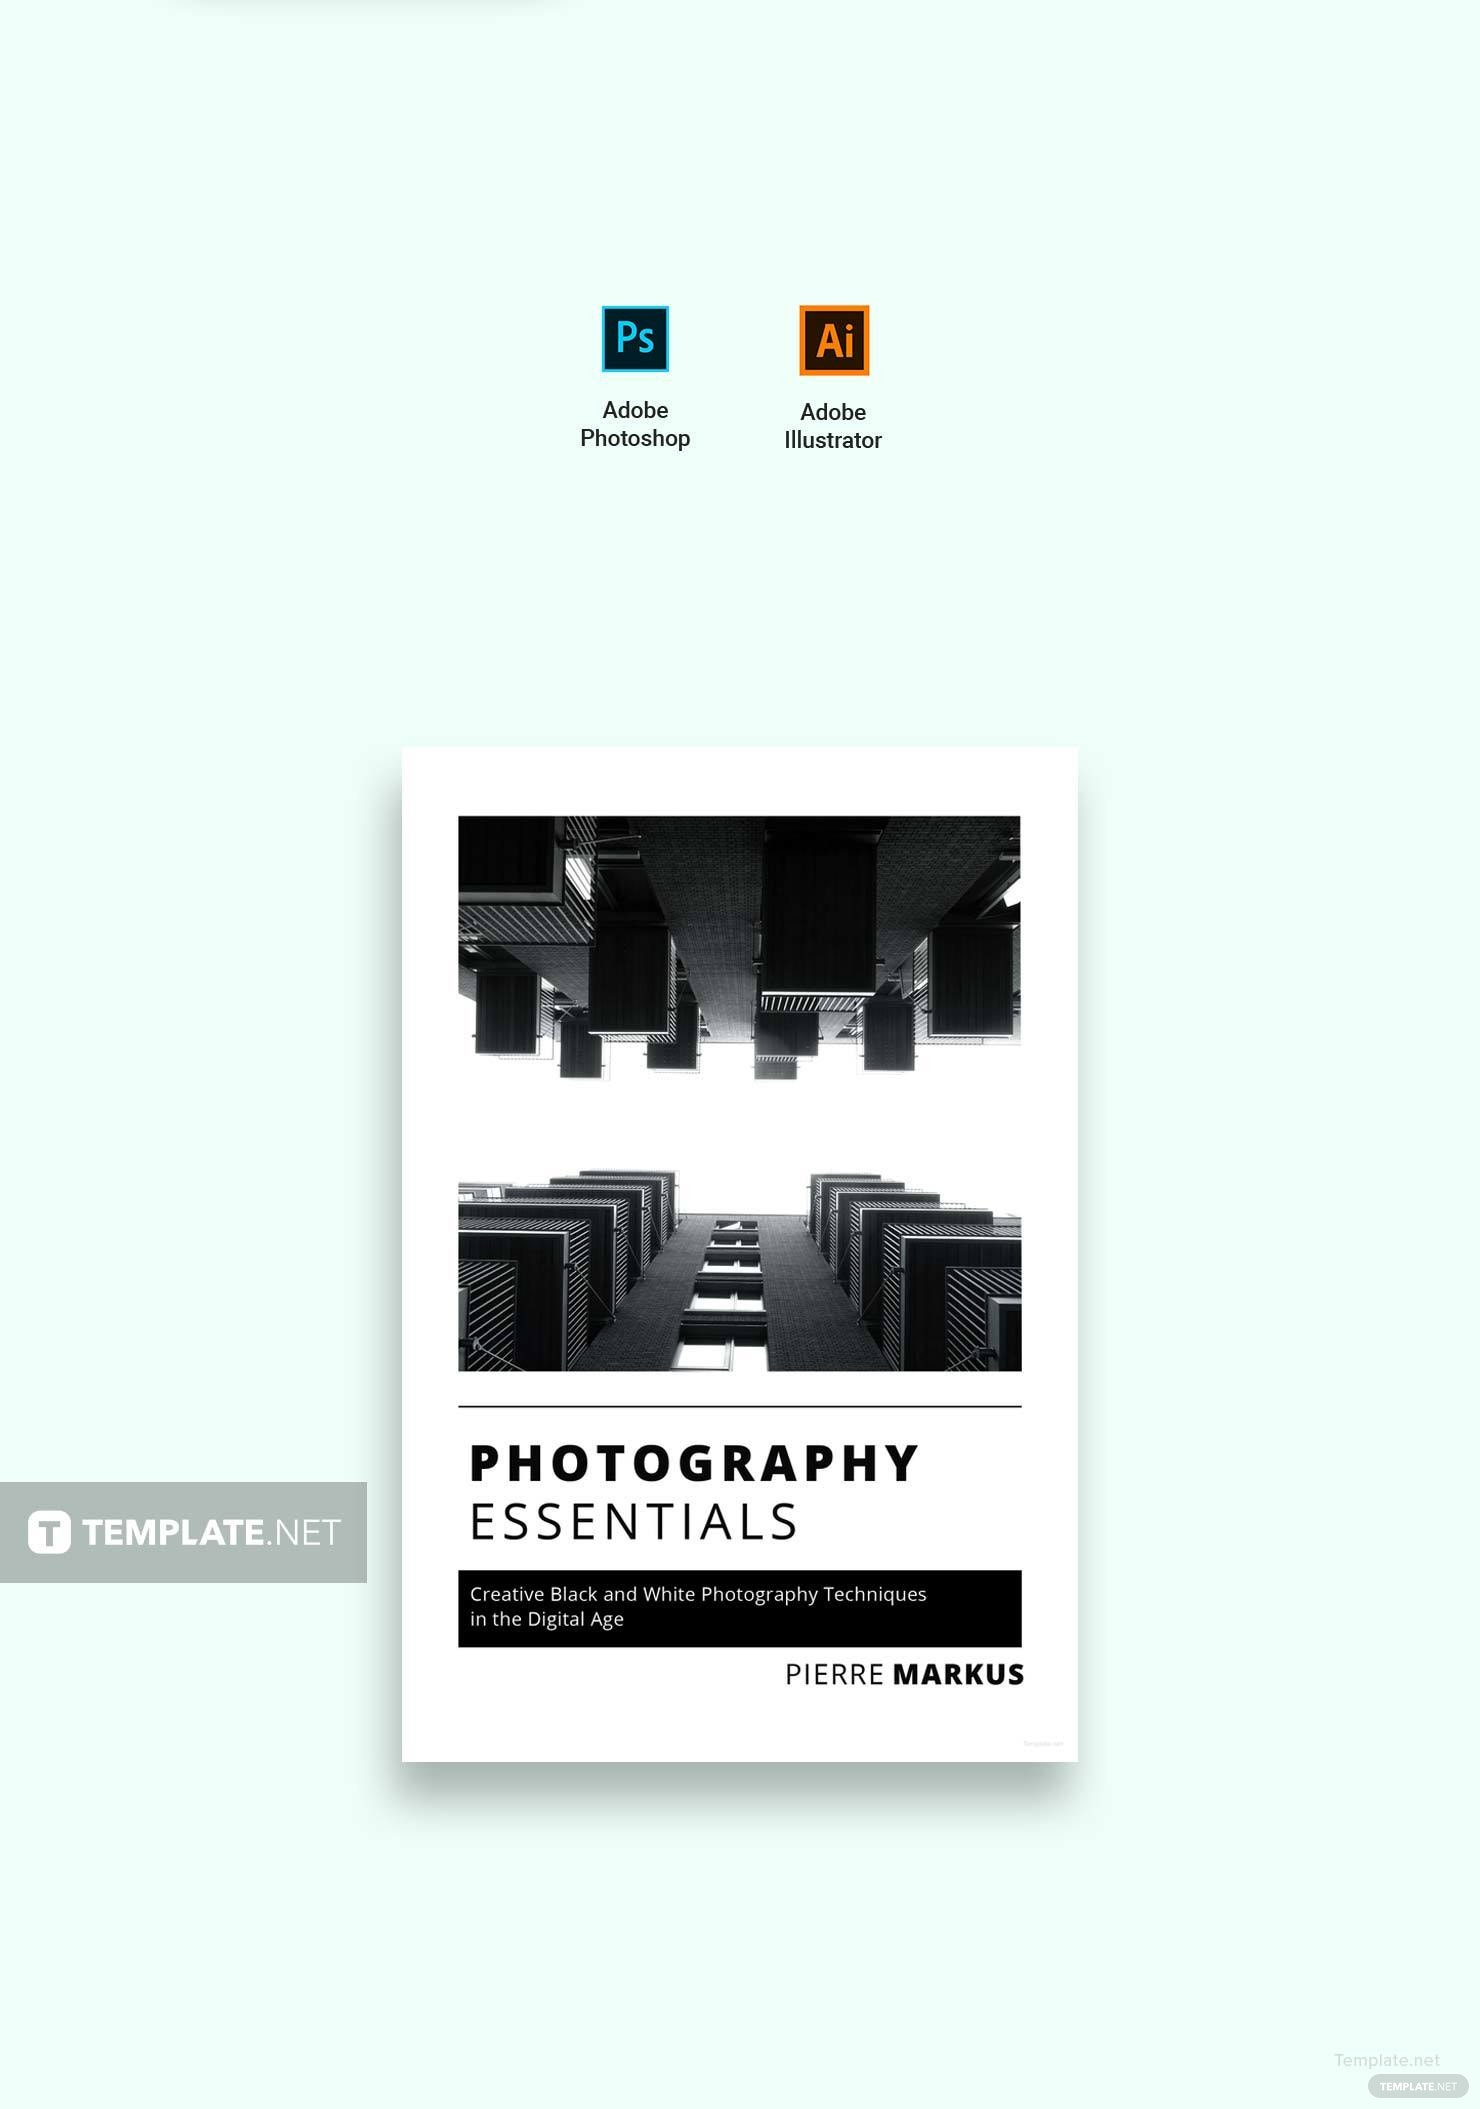 Free Photo Book Cover Template in Adobe Photoshop, Illustrator ...